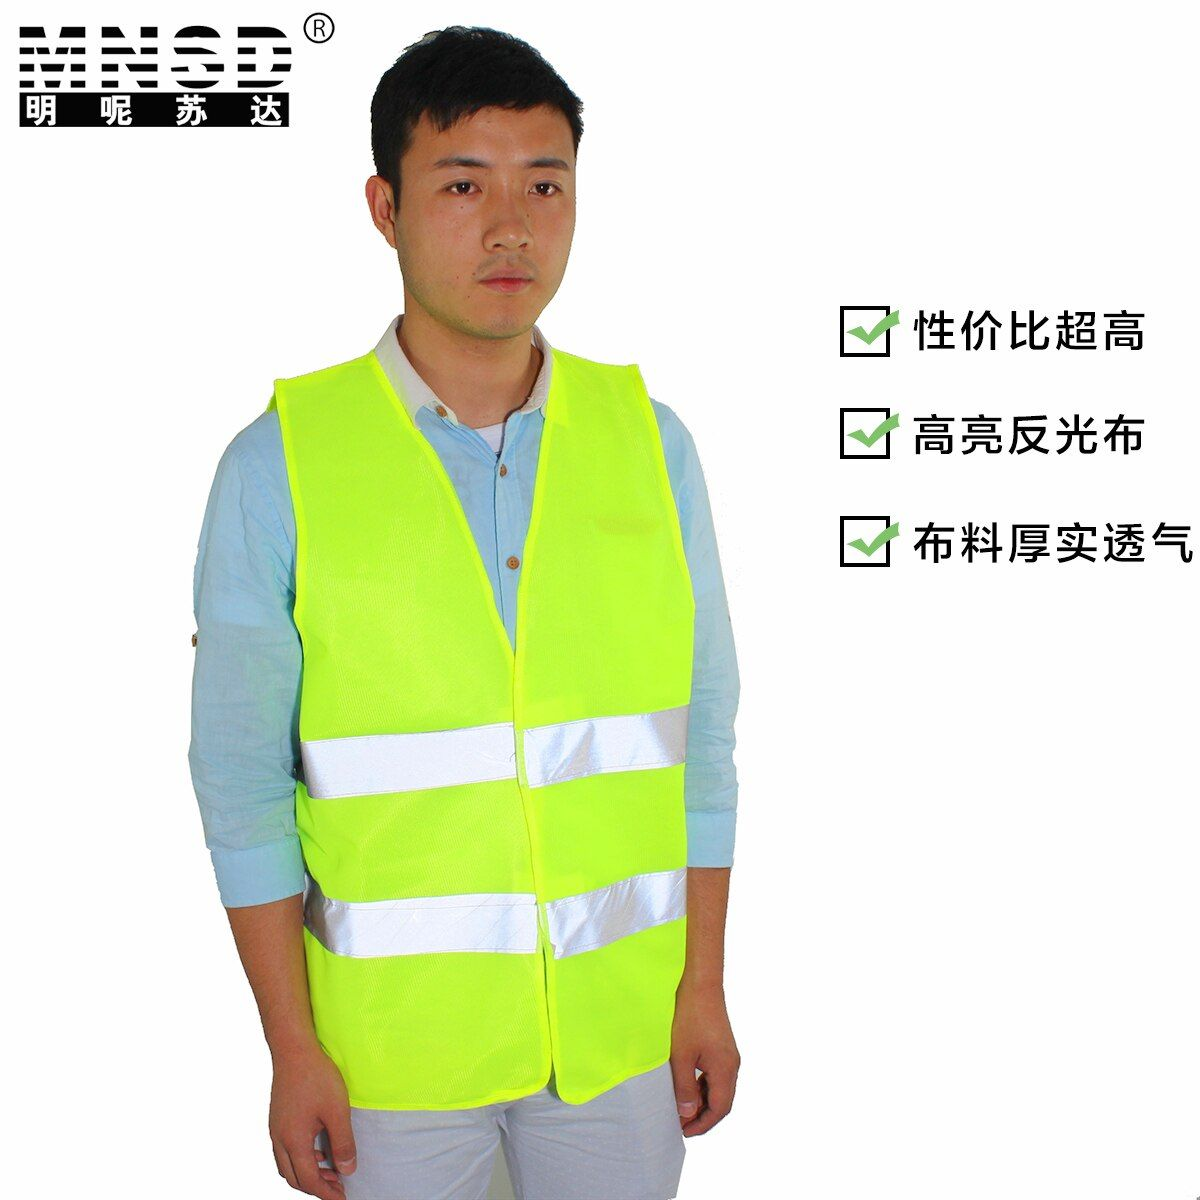 MNSD 200 Pieces An Order Yellow Safety Reflective Vest Chaleco Reflectante Gilet Jaune Securite Blue Reflective Vest